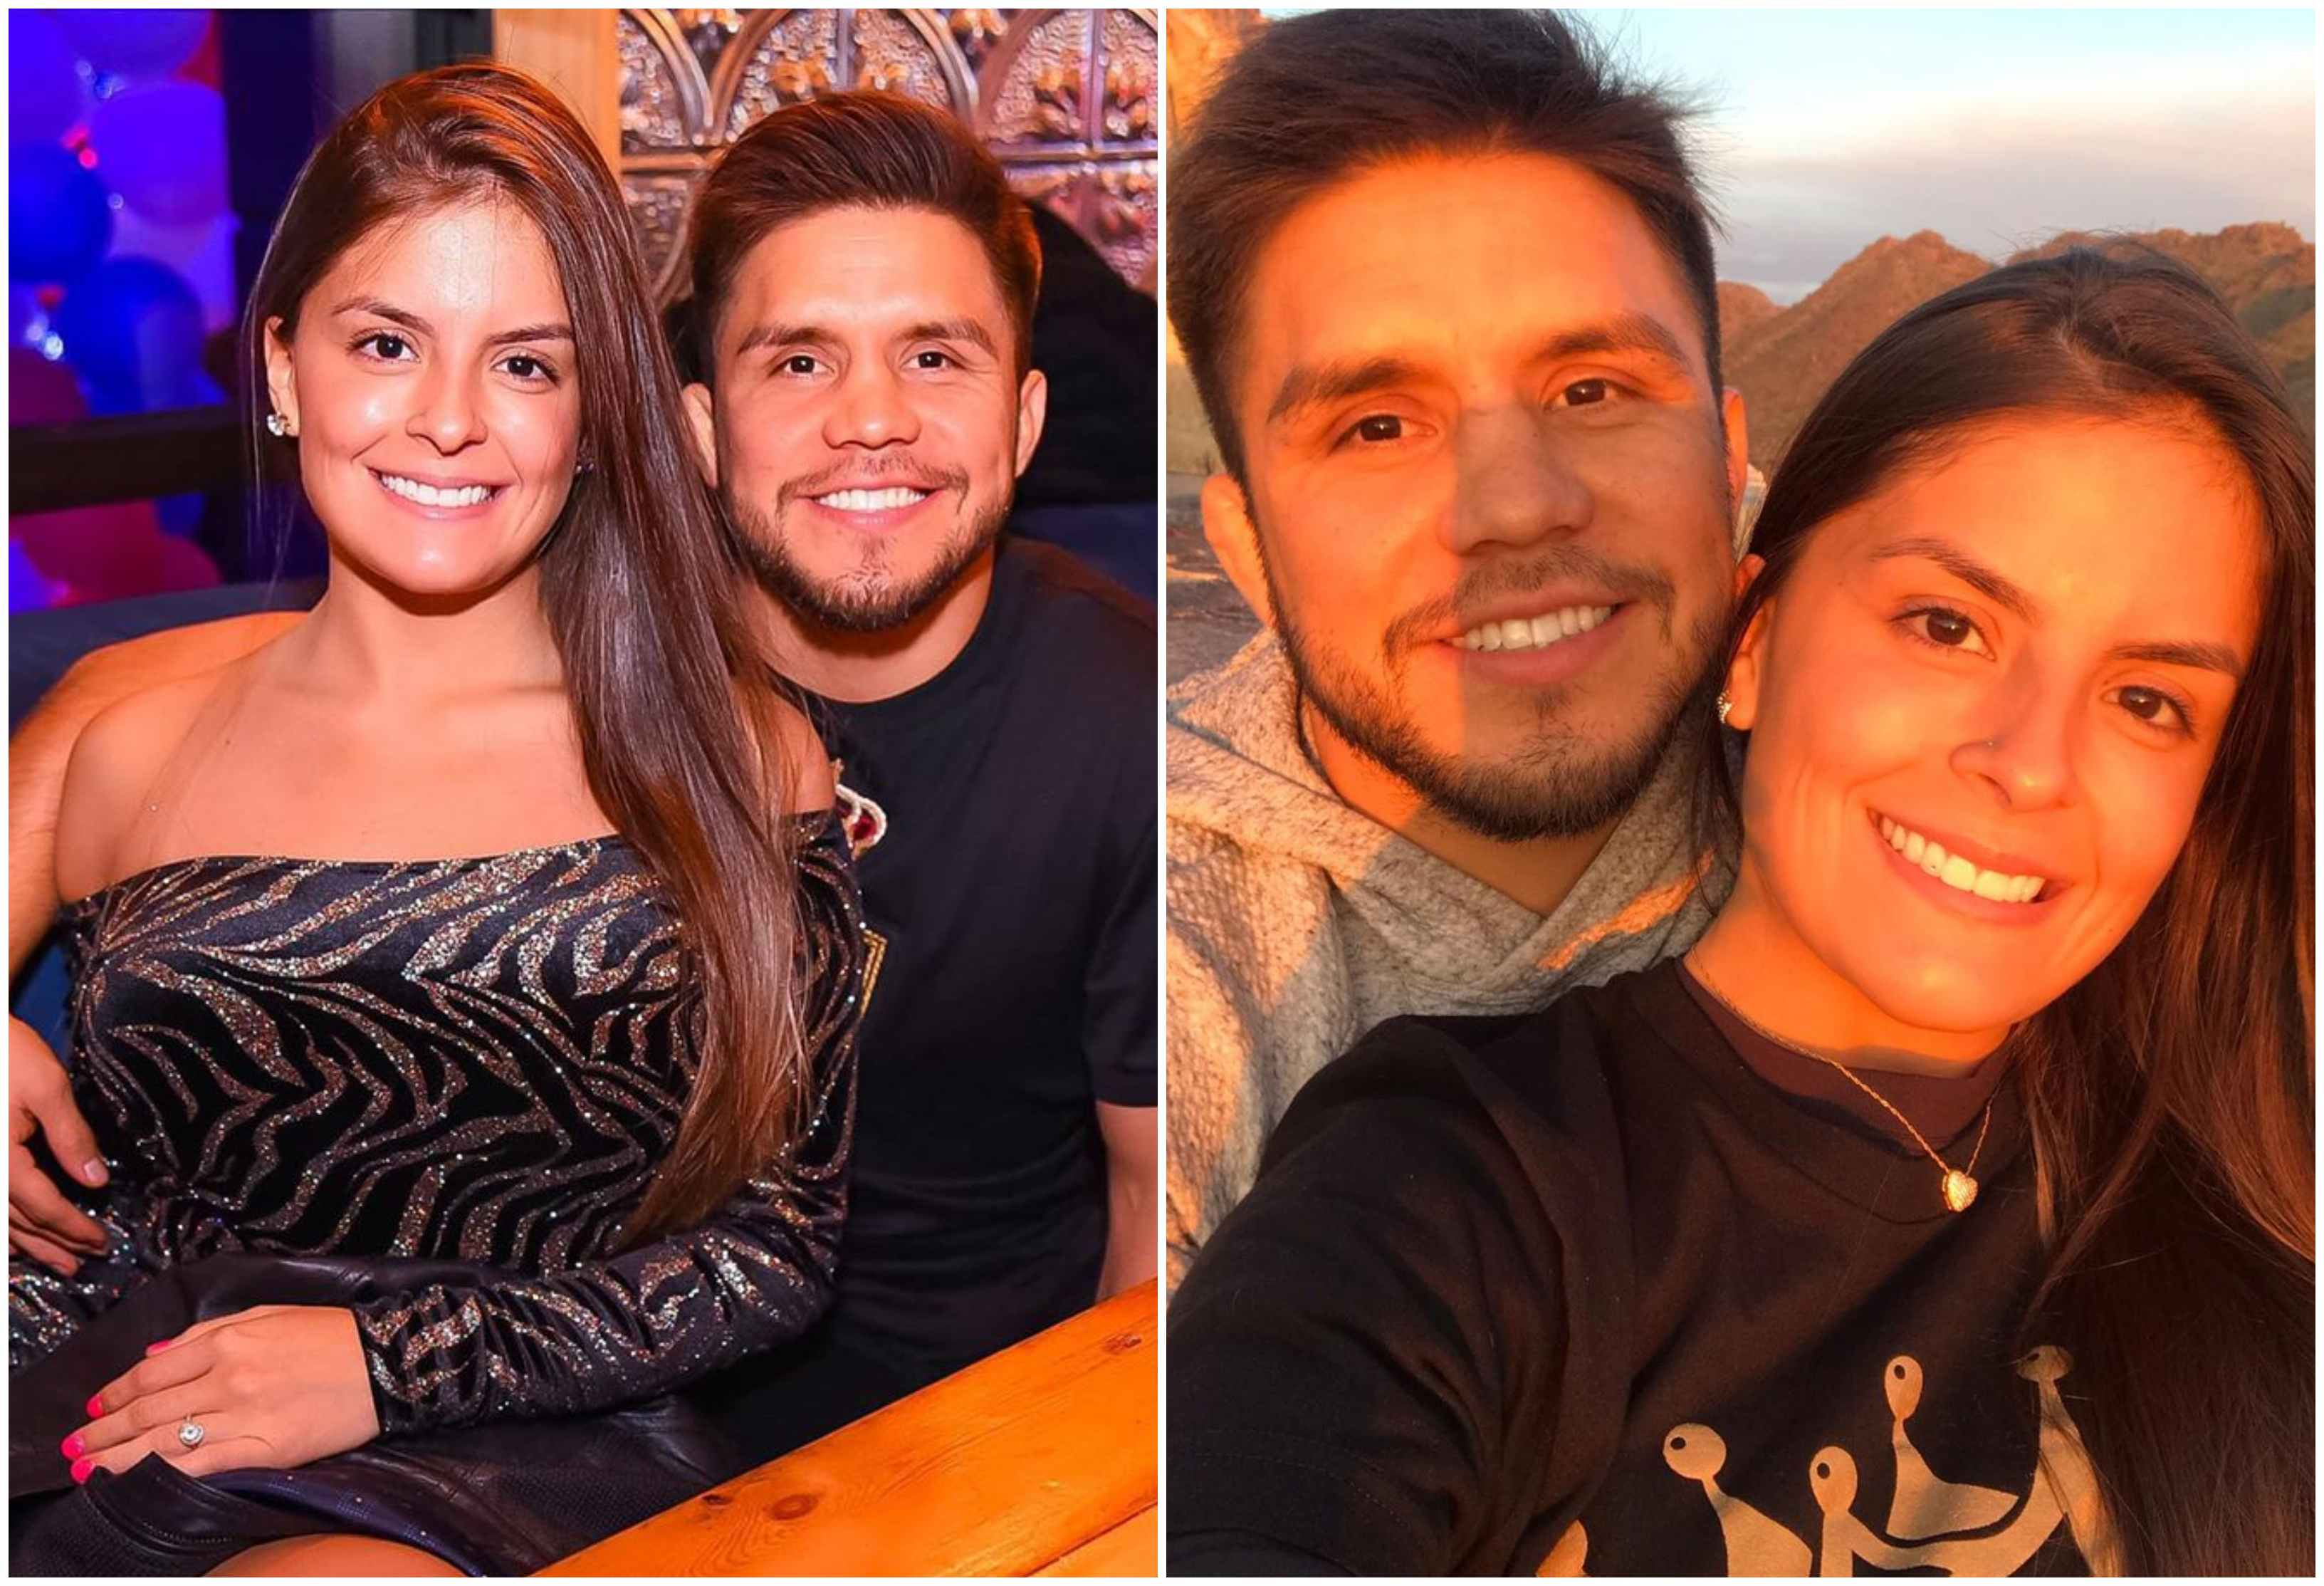 UFC News: Henry Cejudo posts a photo with his better half; are they the 'hottest couple in Hollywood' as he claims? - Henry